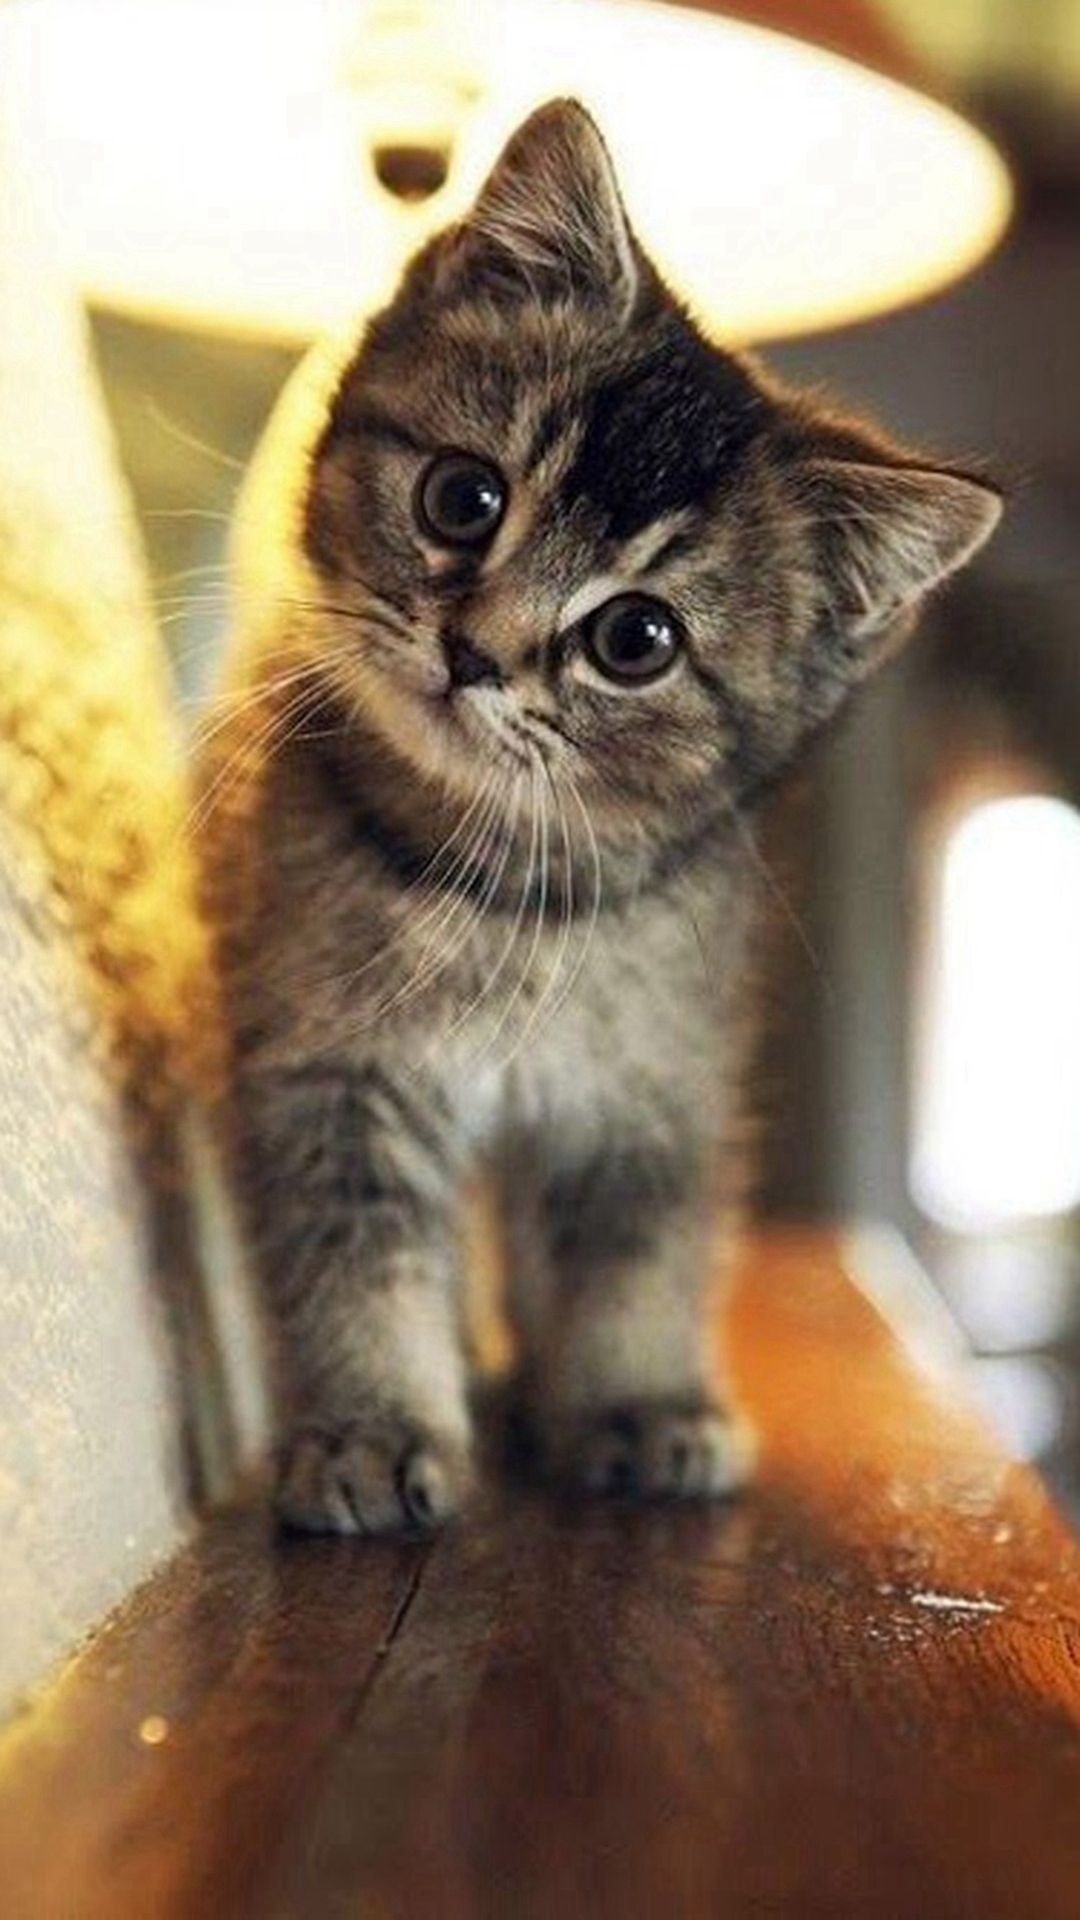 Wallpaper iphone cute cat - Cute Stare At Cat Animal Iphone 6 Plus Wallpaper